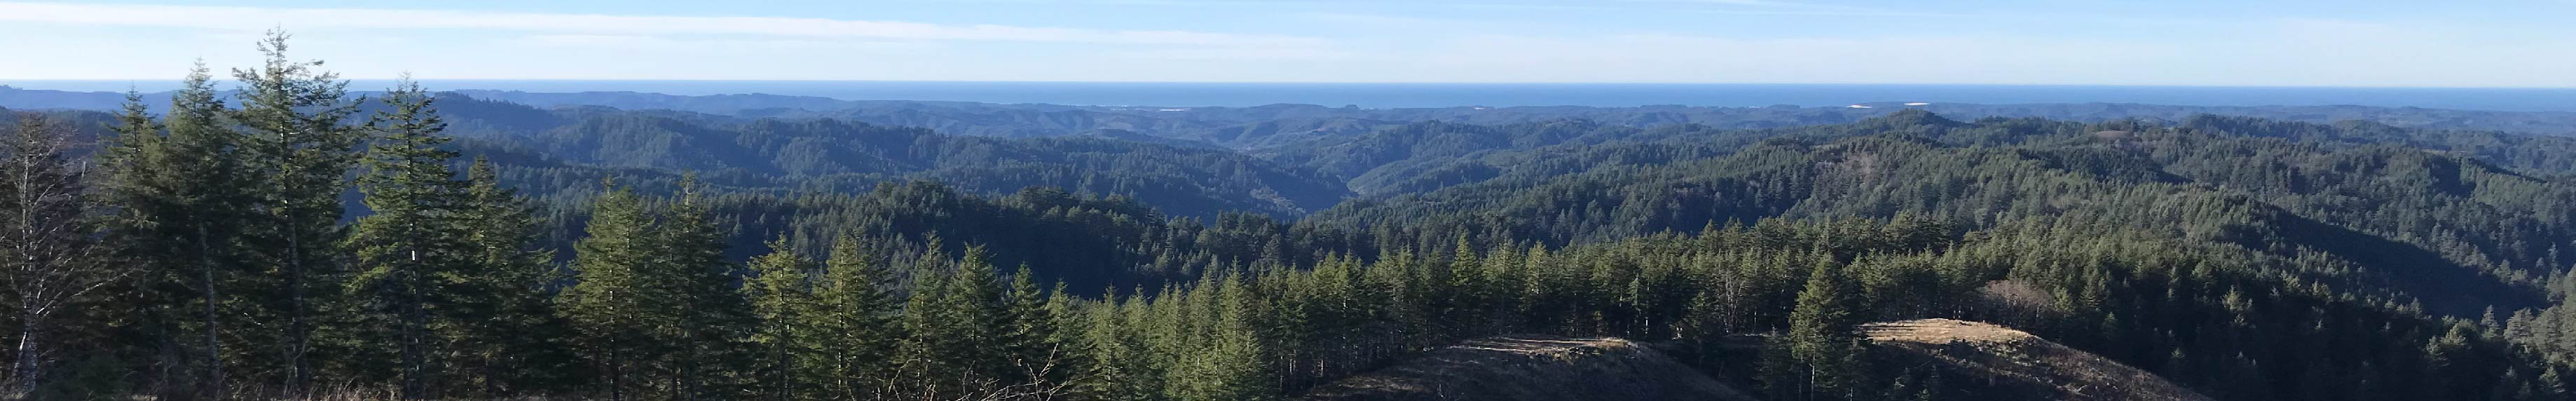 Photo of mountains covered with trees that make up Elliott State Forest